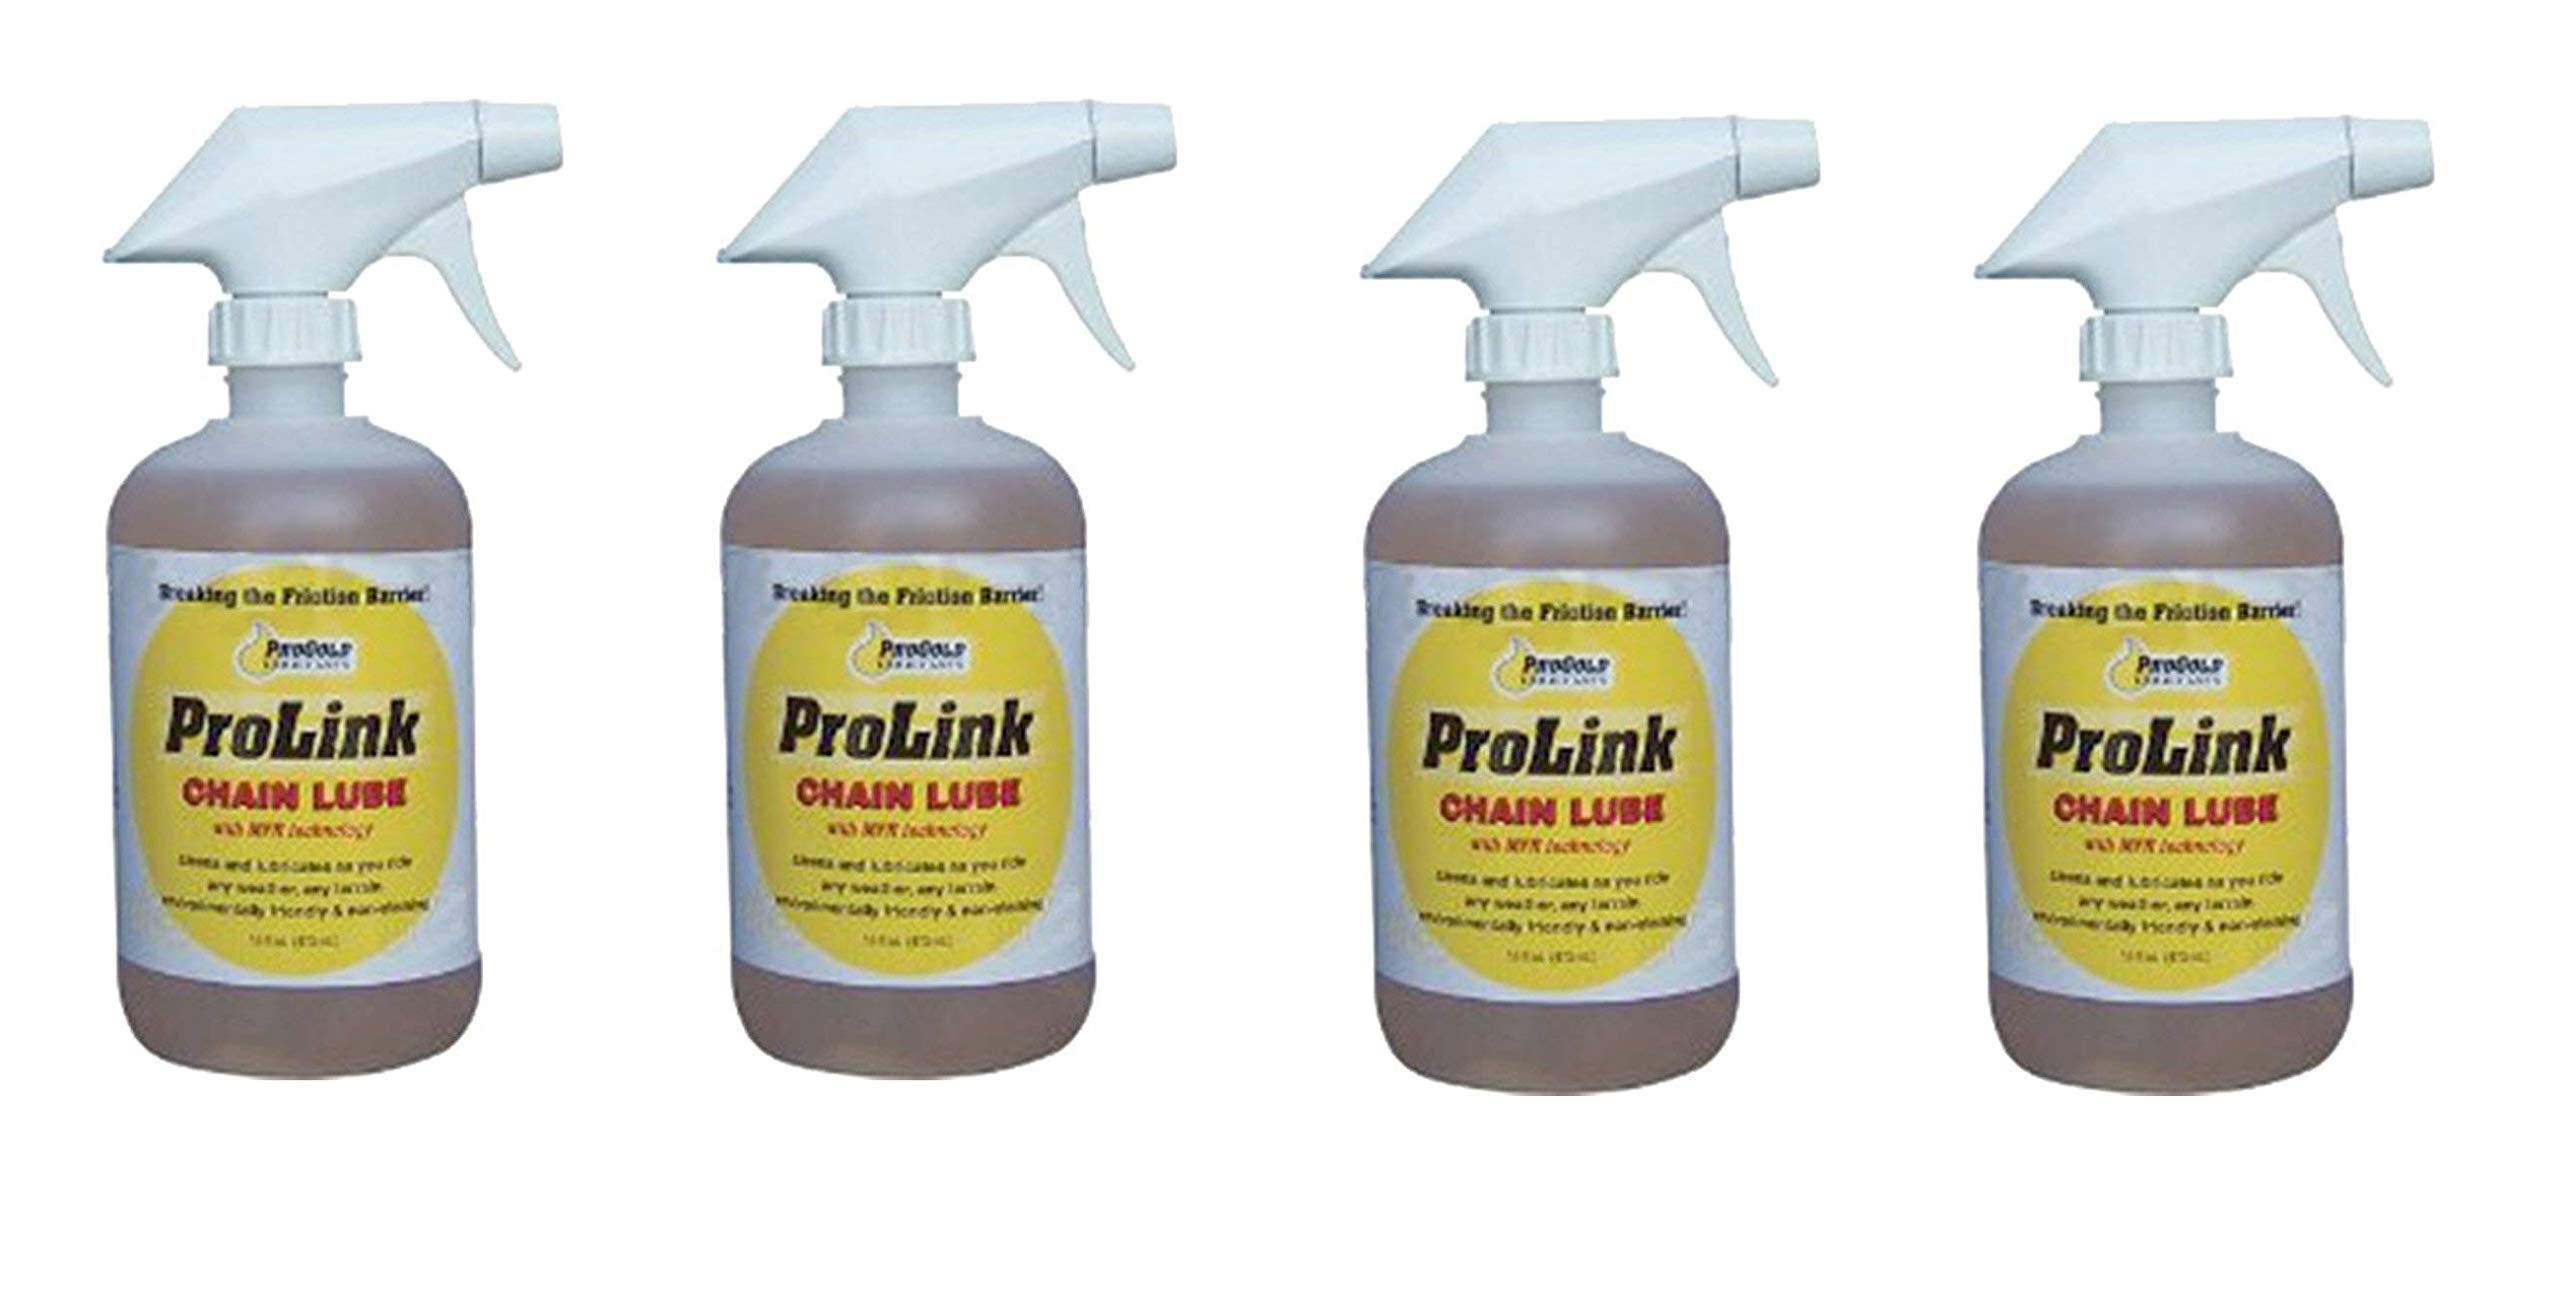 ProGold Prolink 16-Ounce Spray Chain Lube (4 Pack)